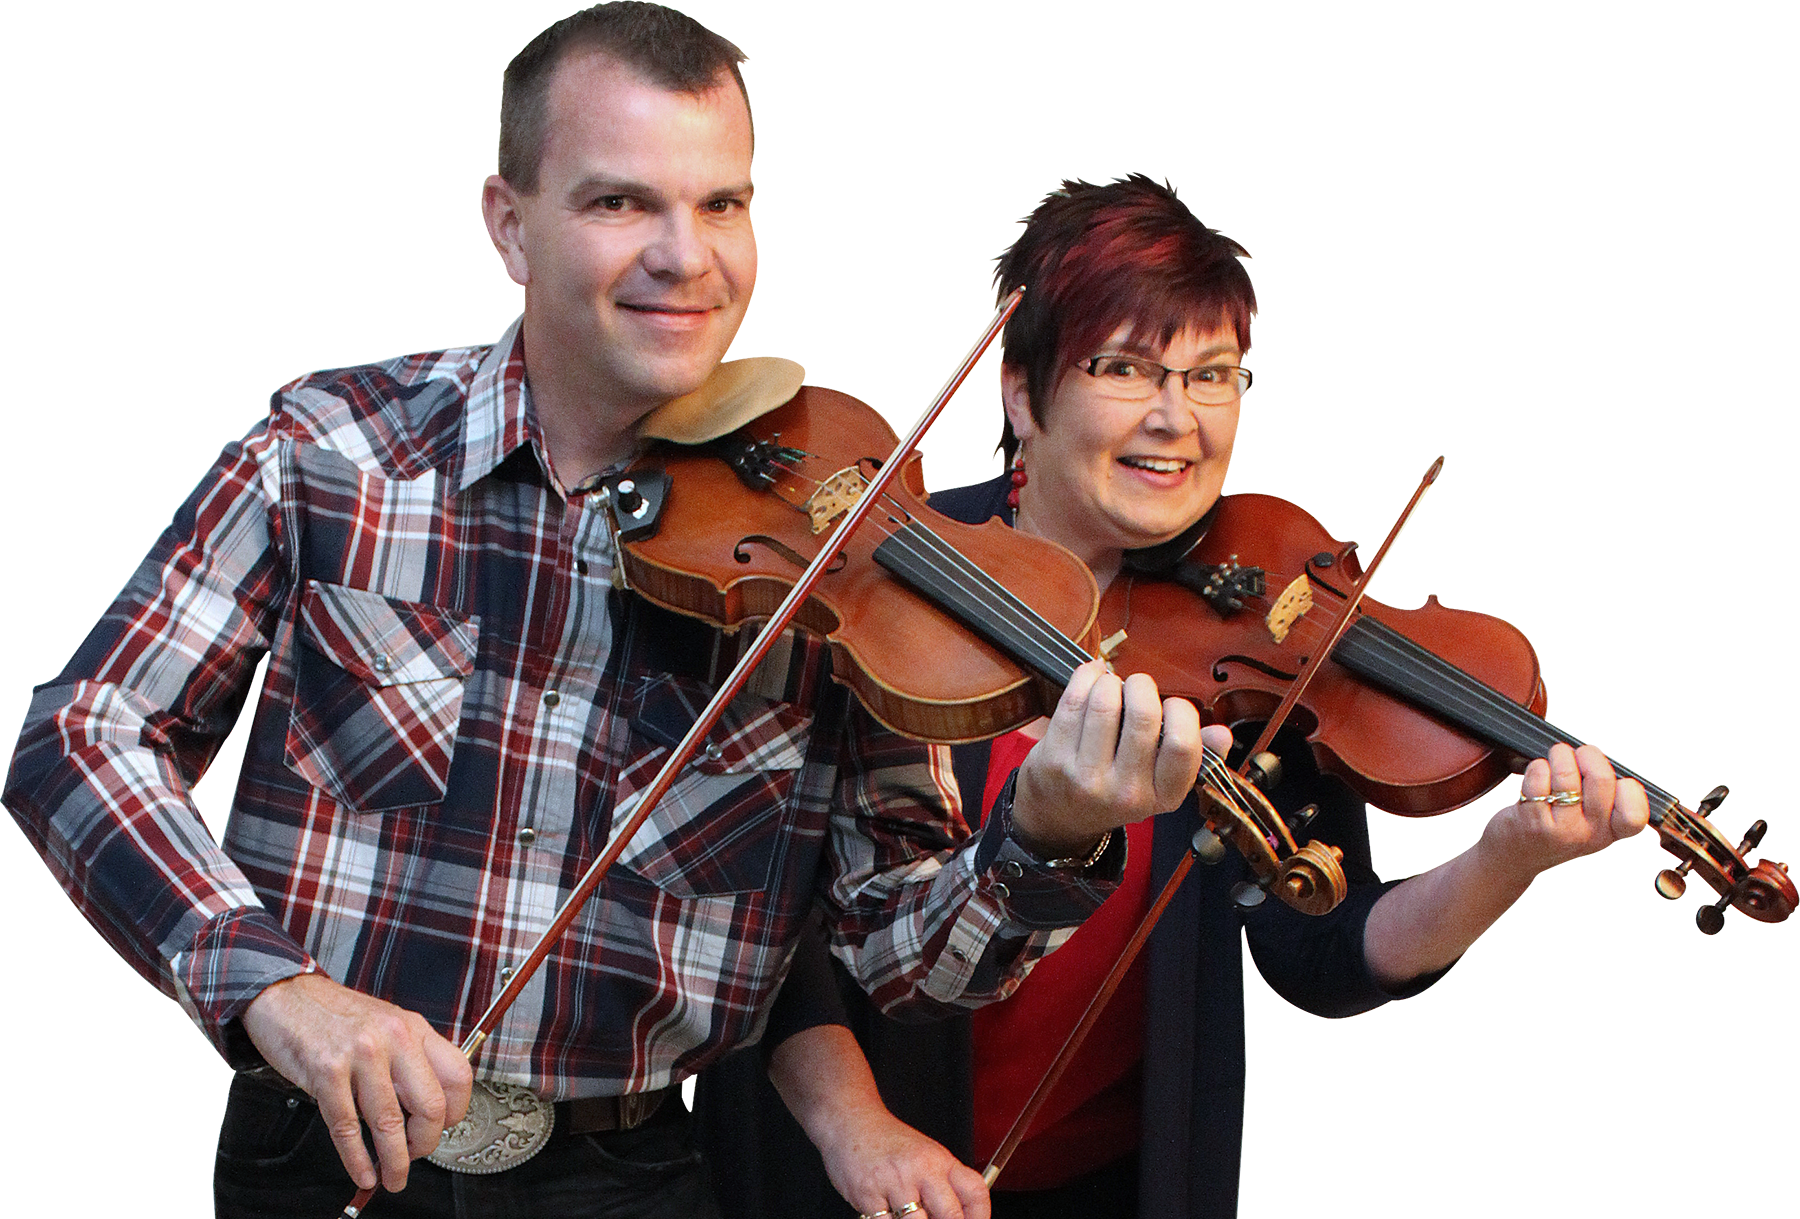 Twin Fiddle performers Scott Woods and Kendra Norris. Scott Woods